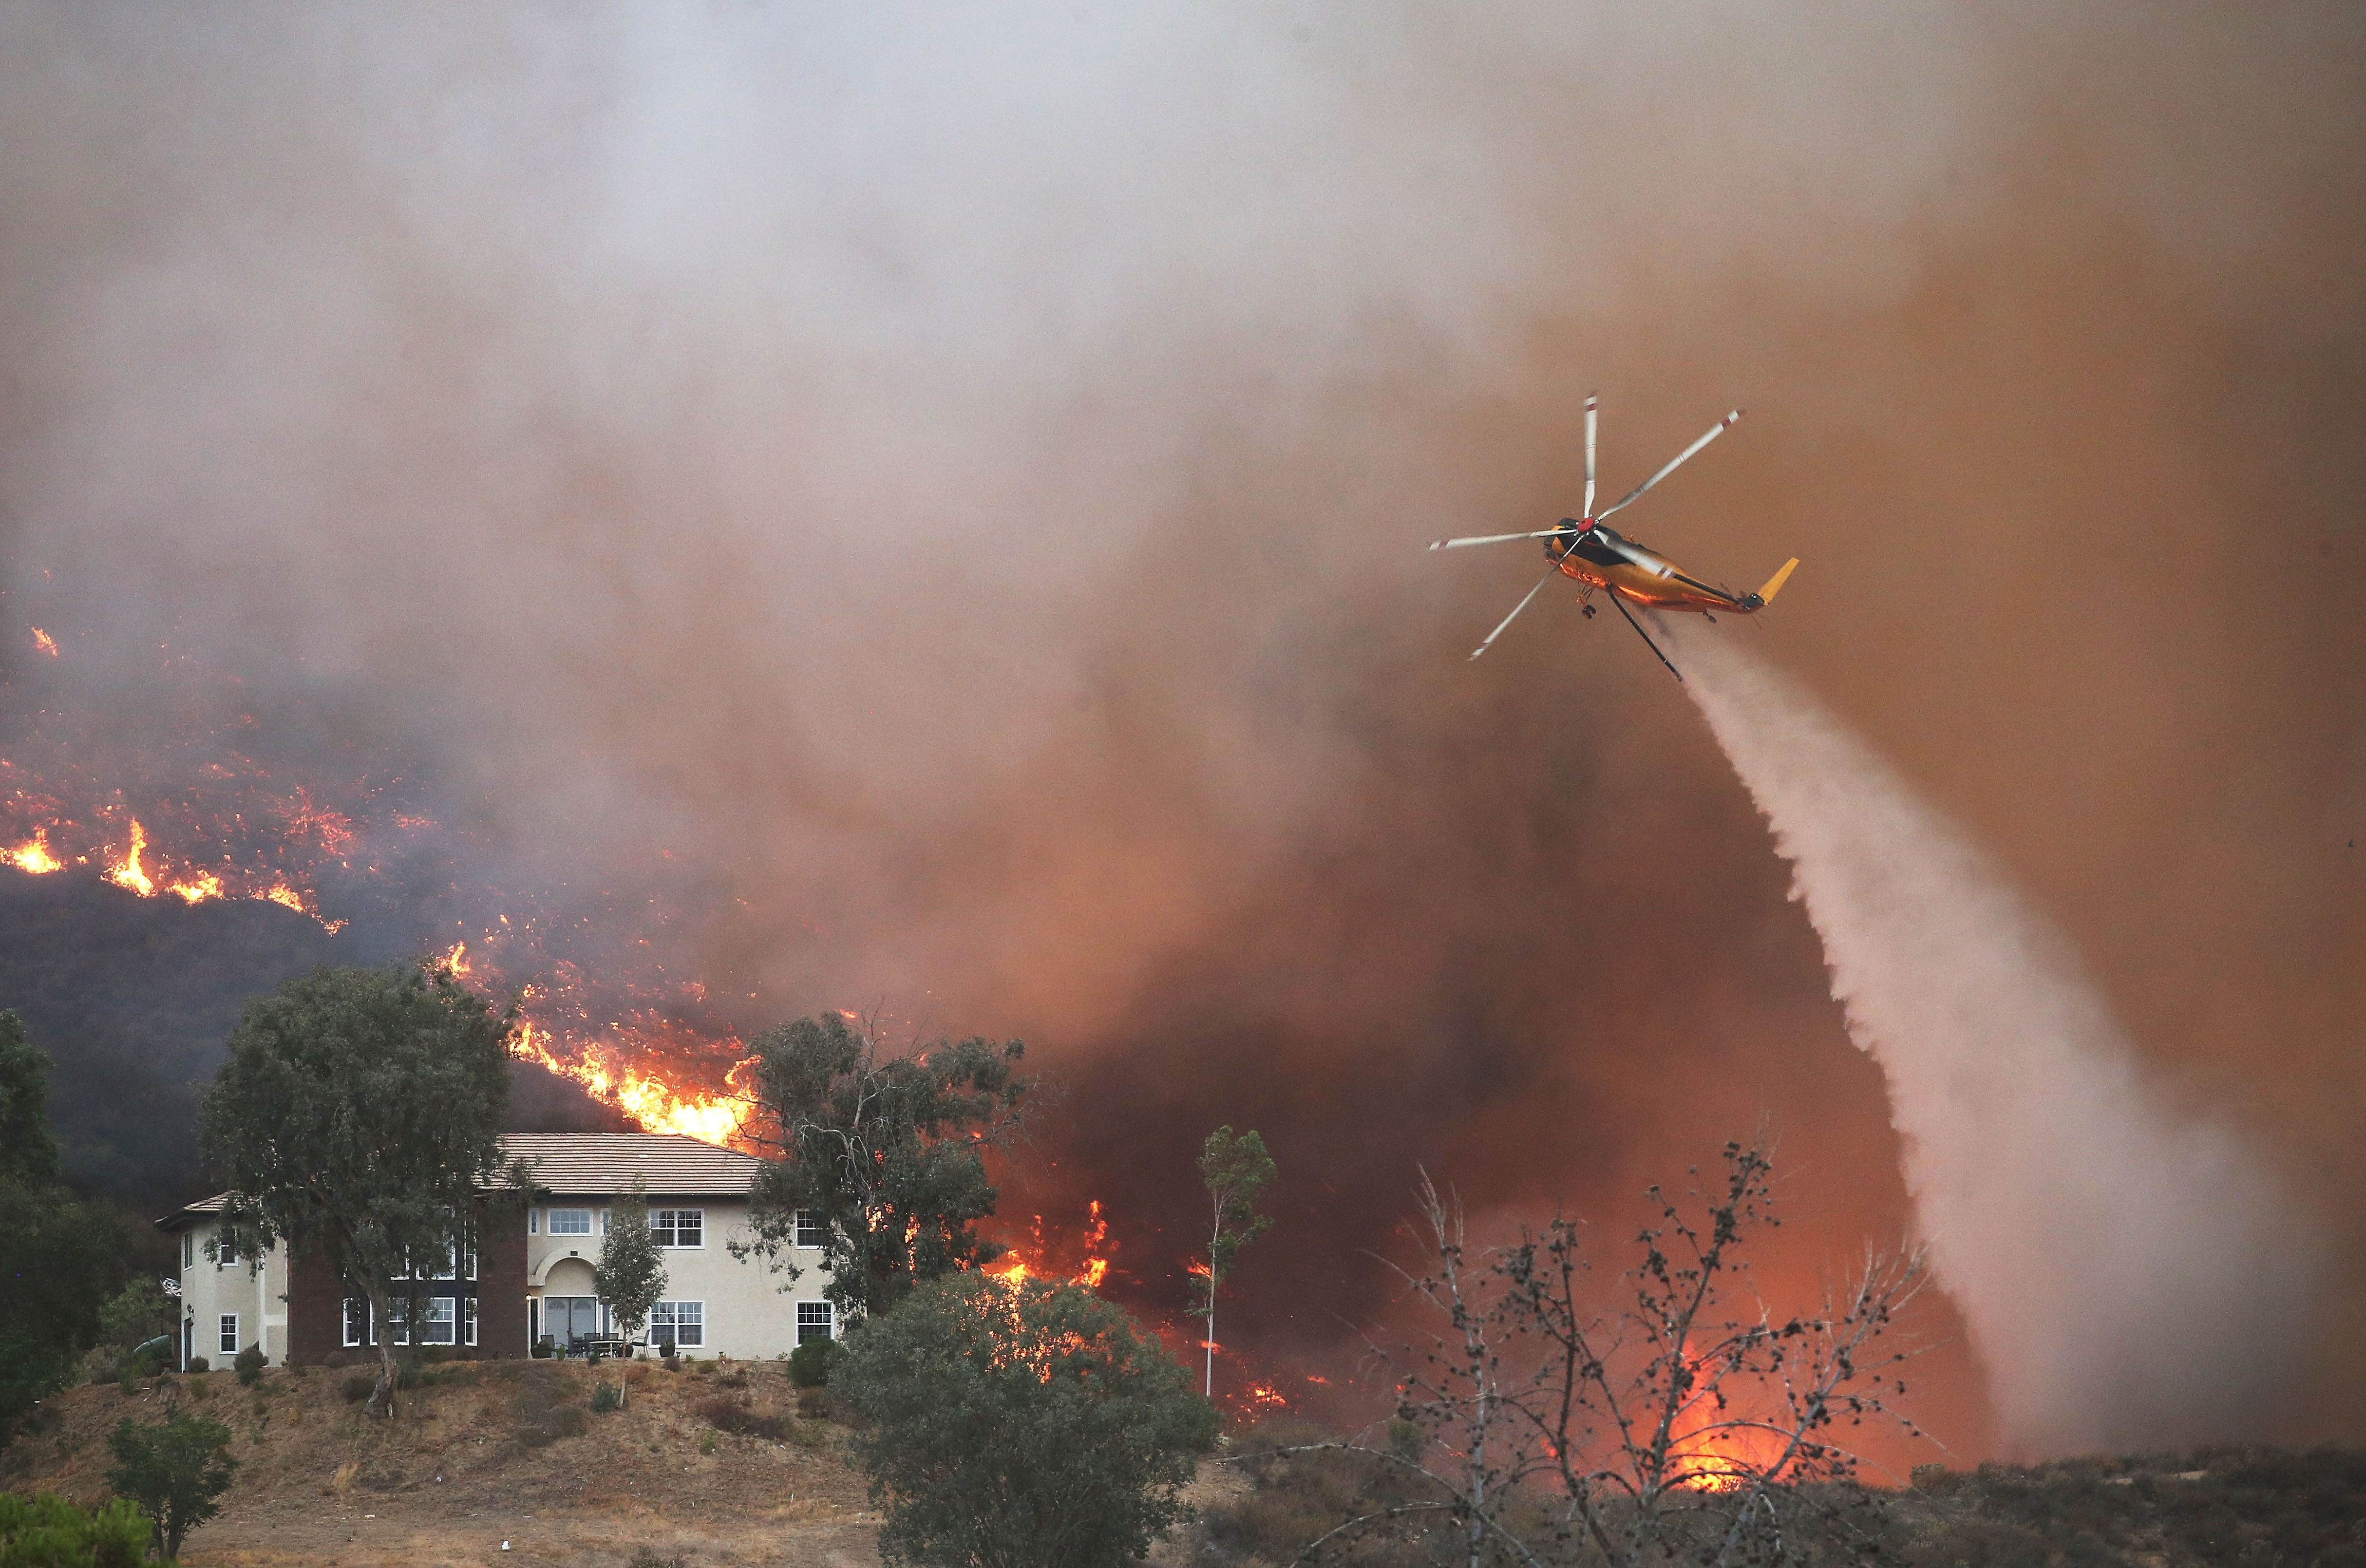 A firefighting helicopter makes a water drop as the Holy Fire burns near homes on August 9, 2018 in Lake Elsinore, California.